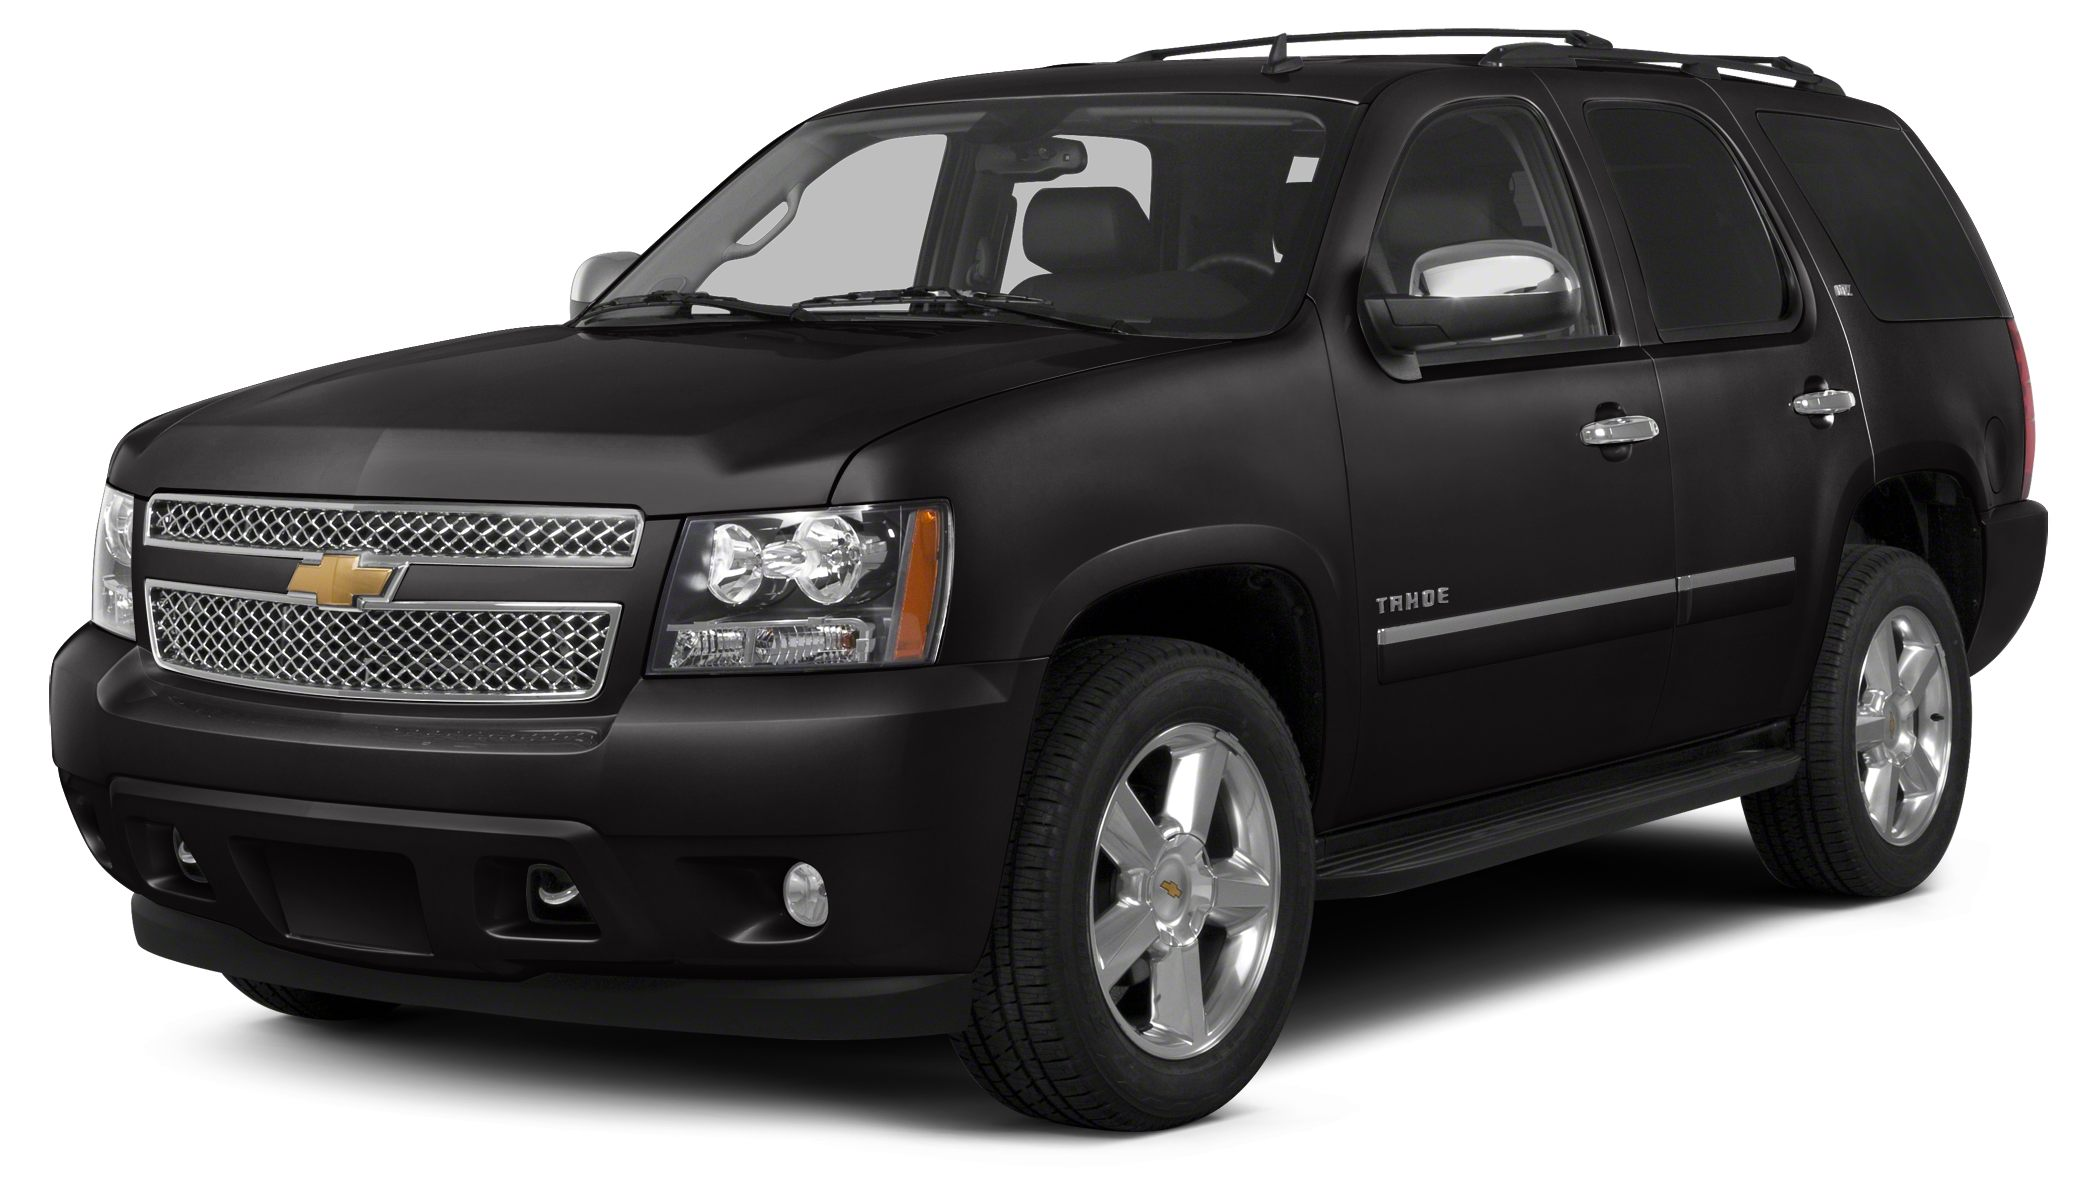 2014 Chevrolet Tahoe LT 1600 below NADA Retail Excellent Condition ONLY 23411 Miles Heated L